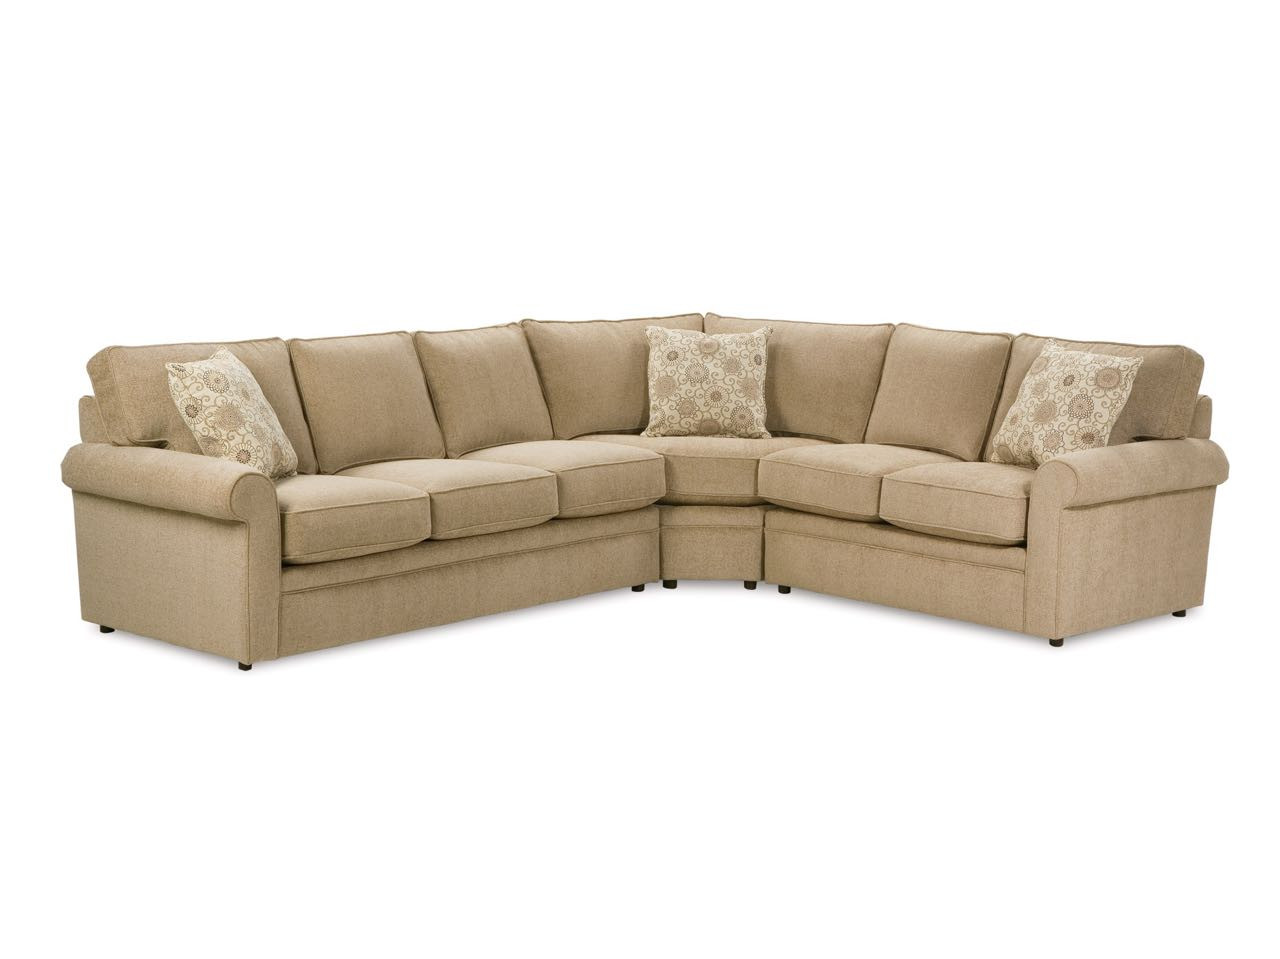 Sofa L 2 X 2 Newport Sectional Upholstered Sectionals Sofas Sectionals